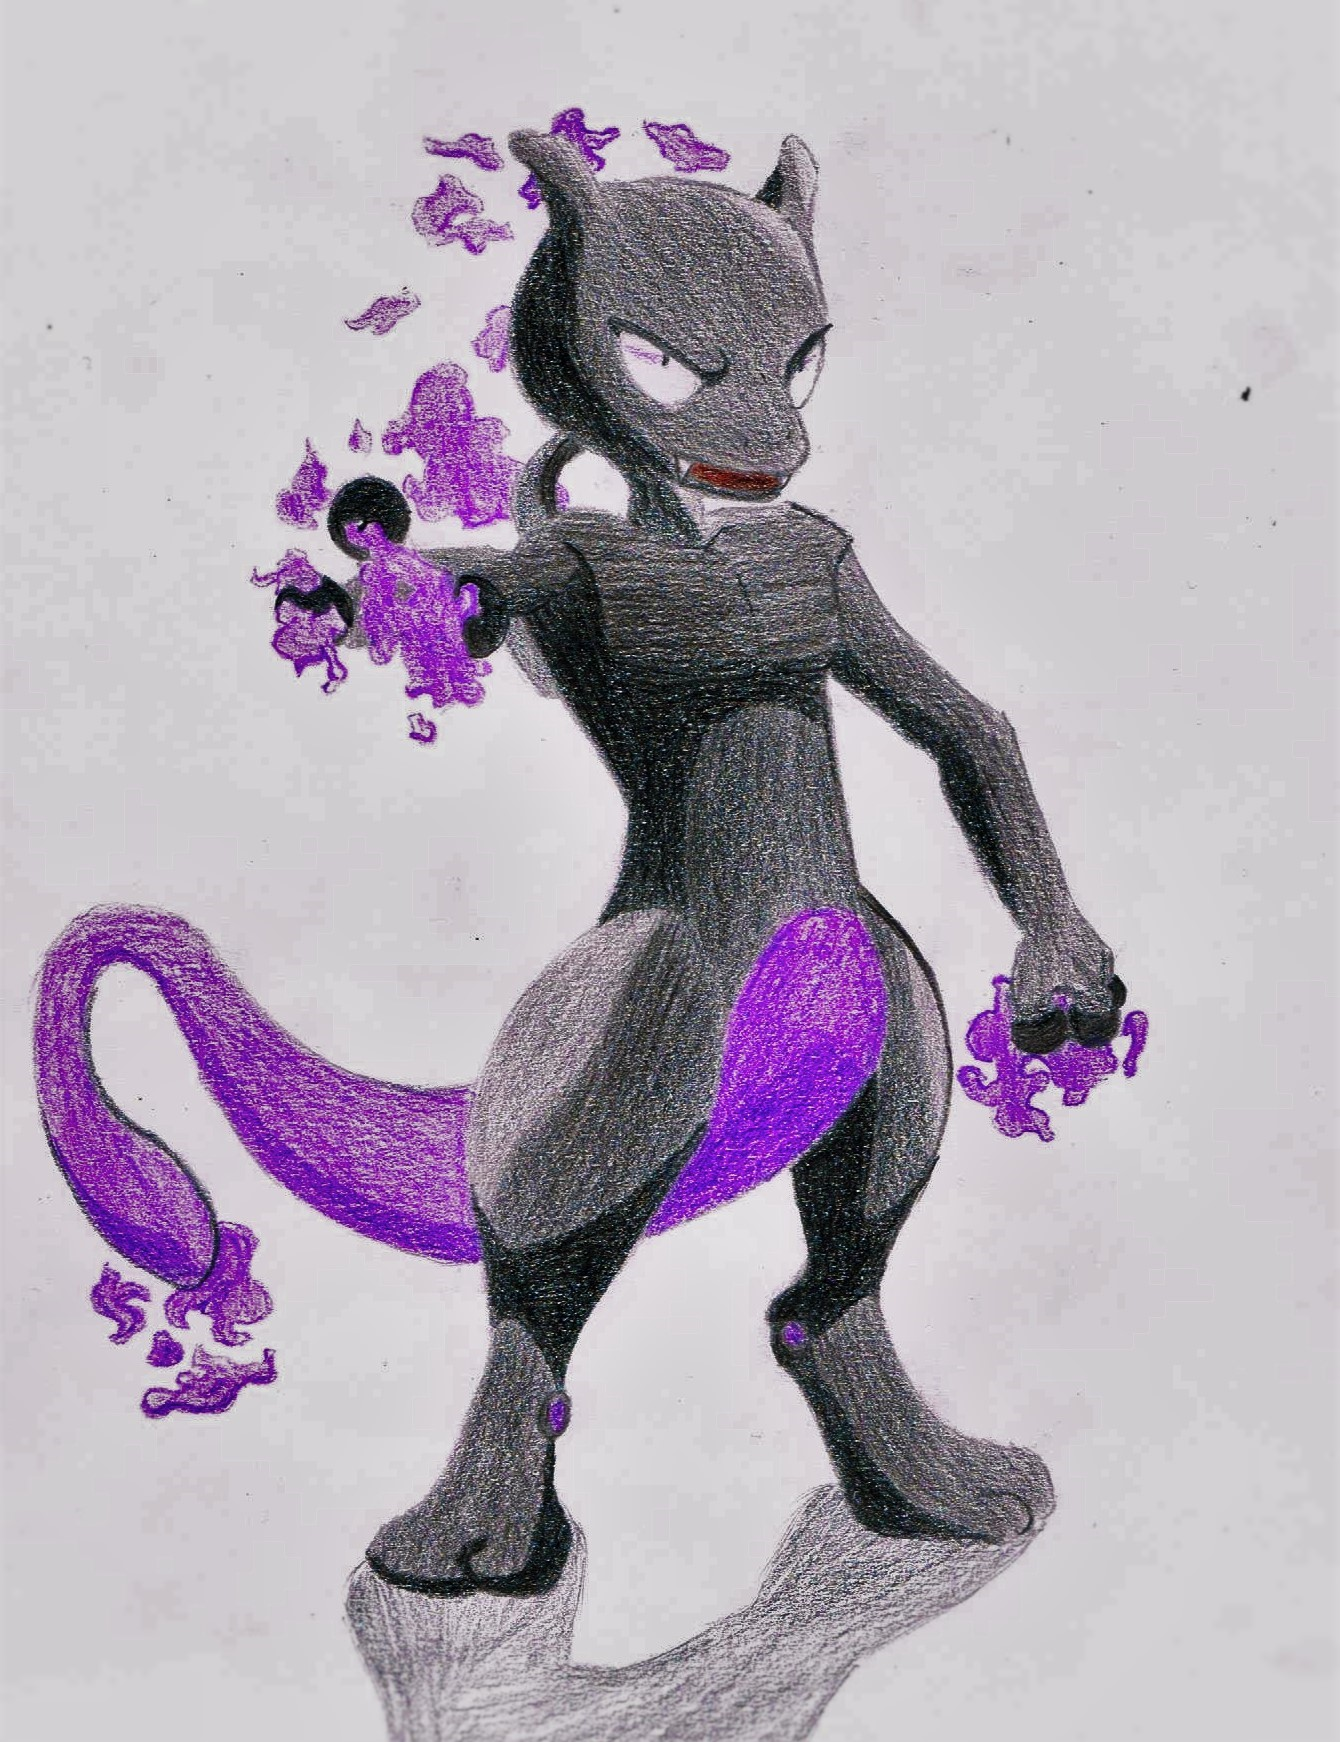 mew two and ghastly